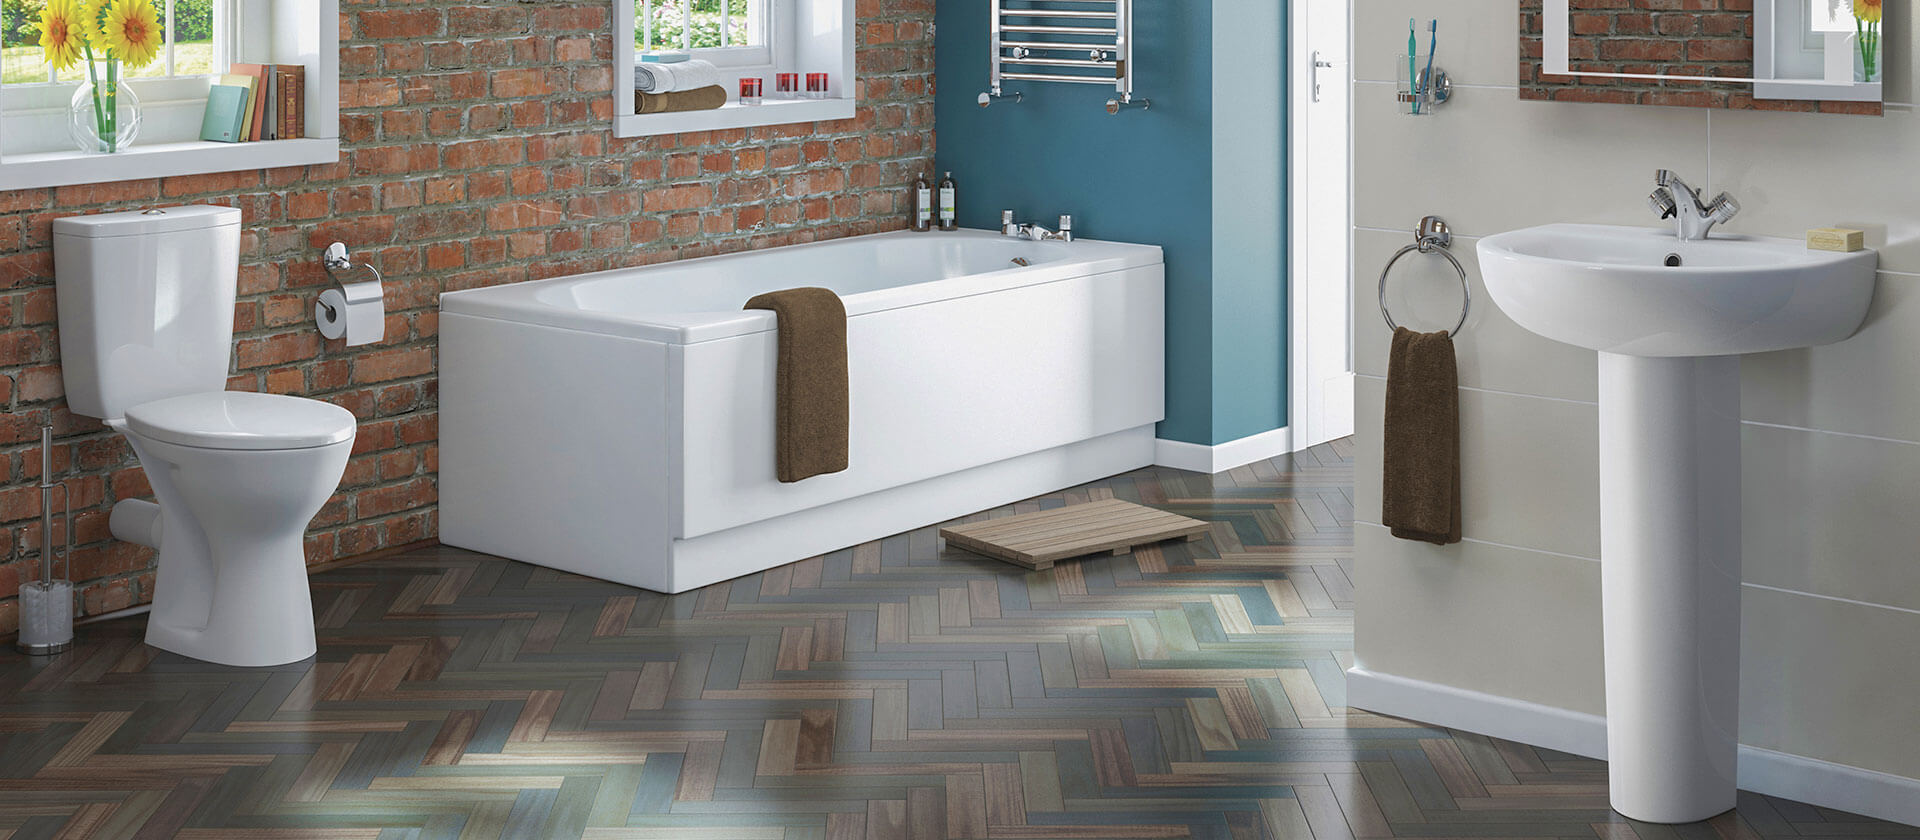 Laminated Wooden Tiles